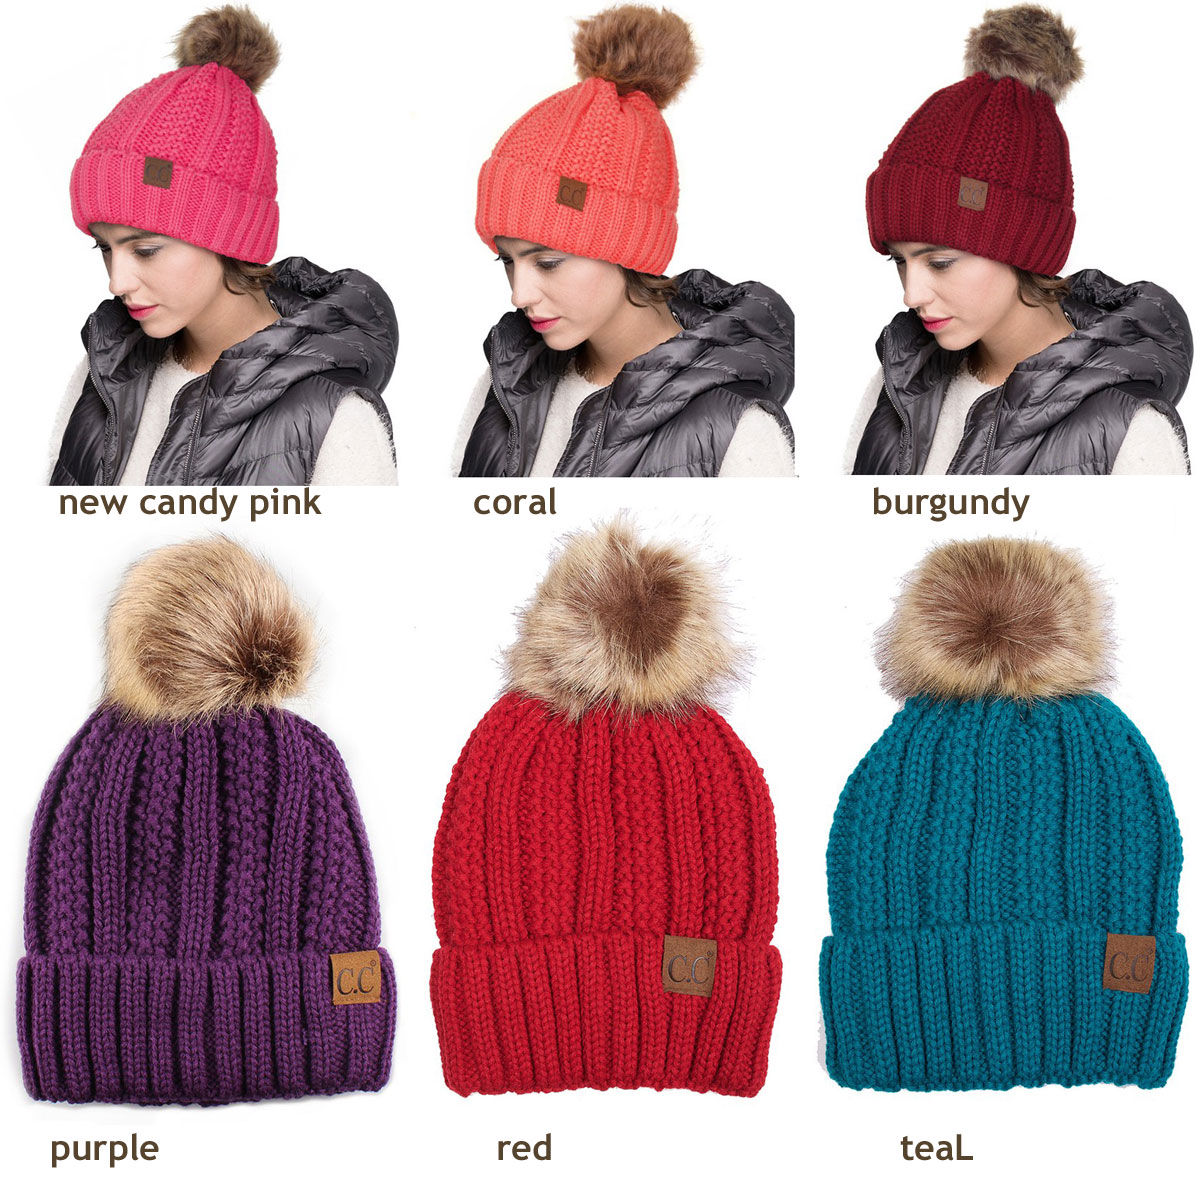 f71d18695d590 ... CC Beanie Hat with Warm Lining and Fur Pom Pom inset 4